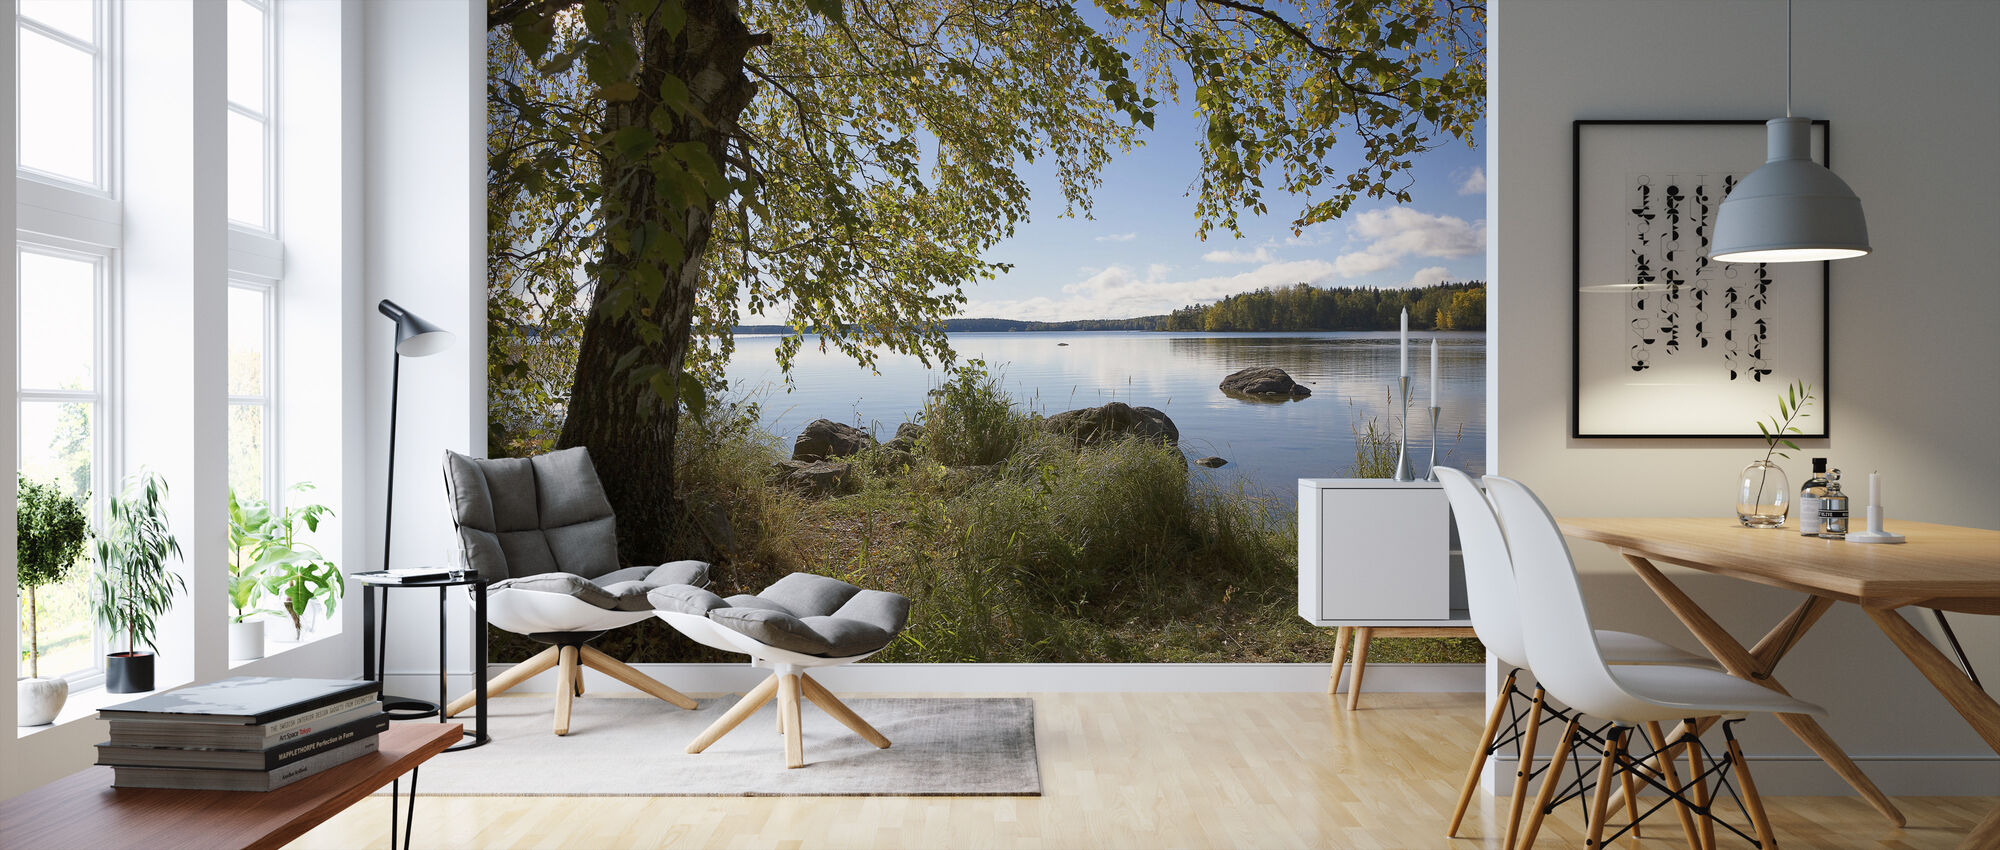 Birch by the Lake - Wallpaper - Living Room